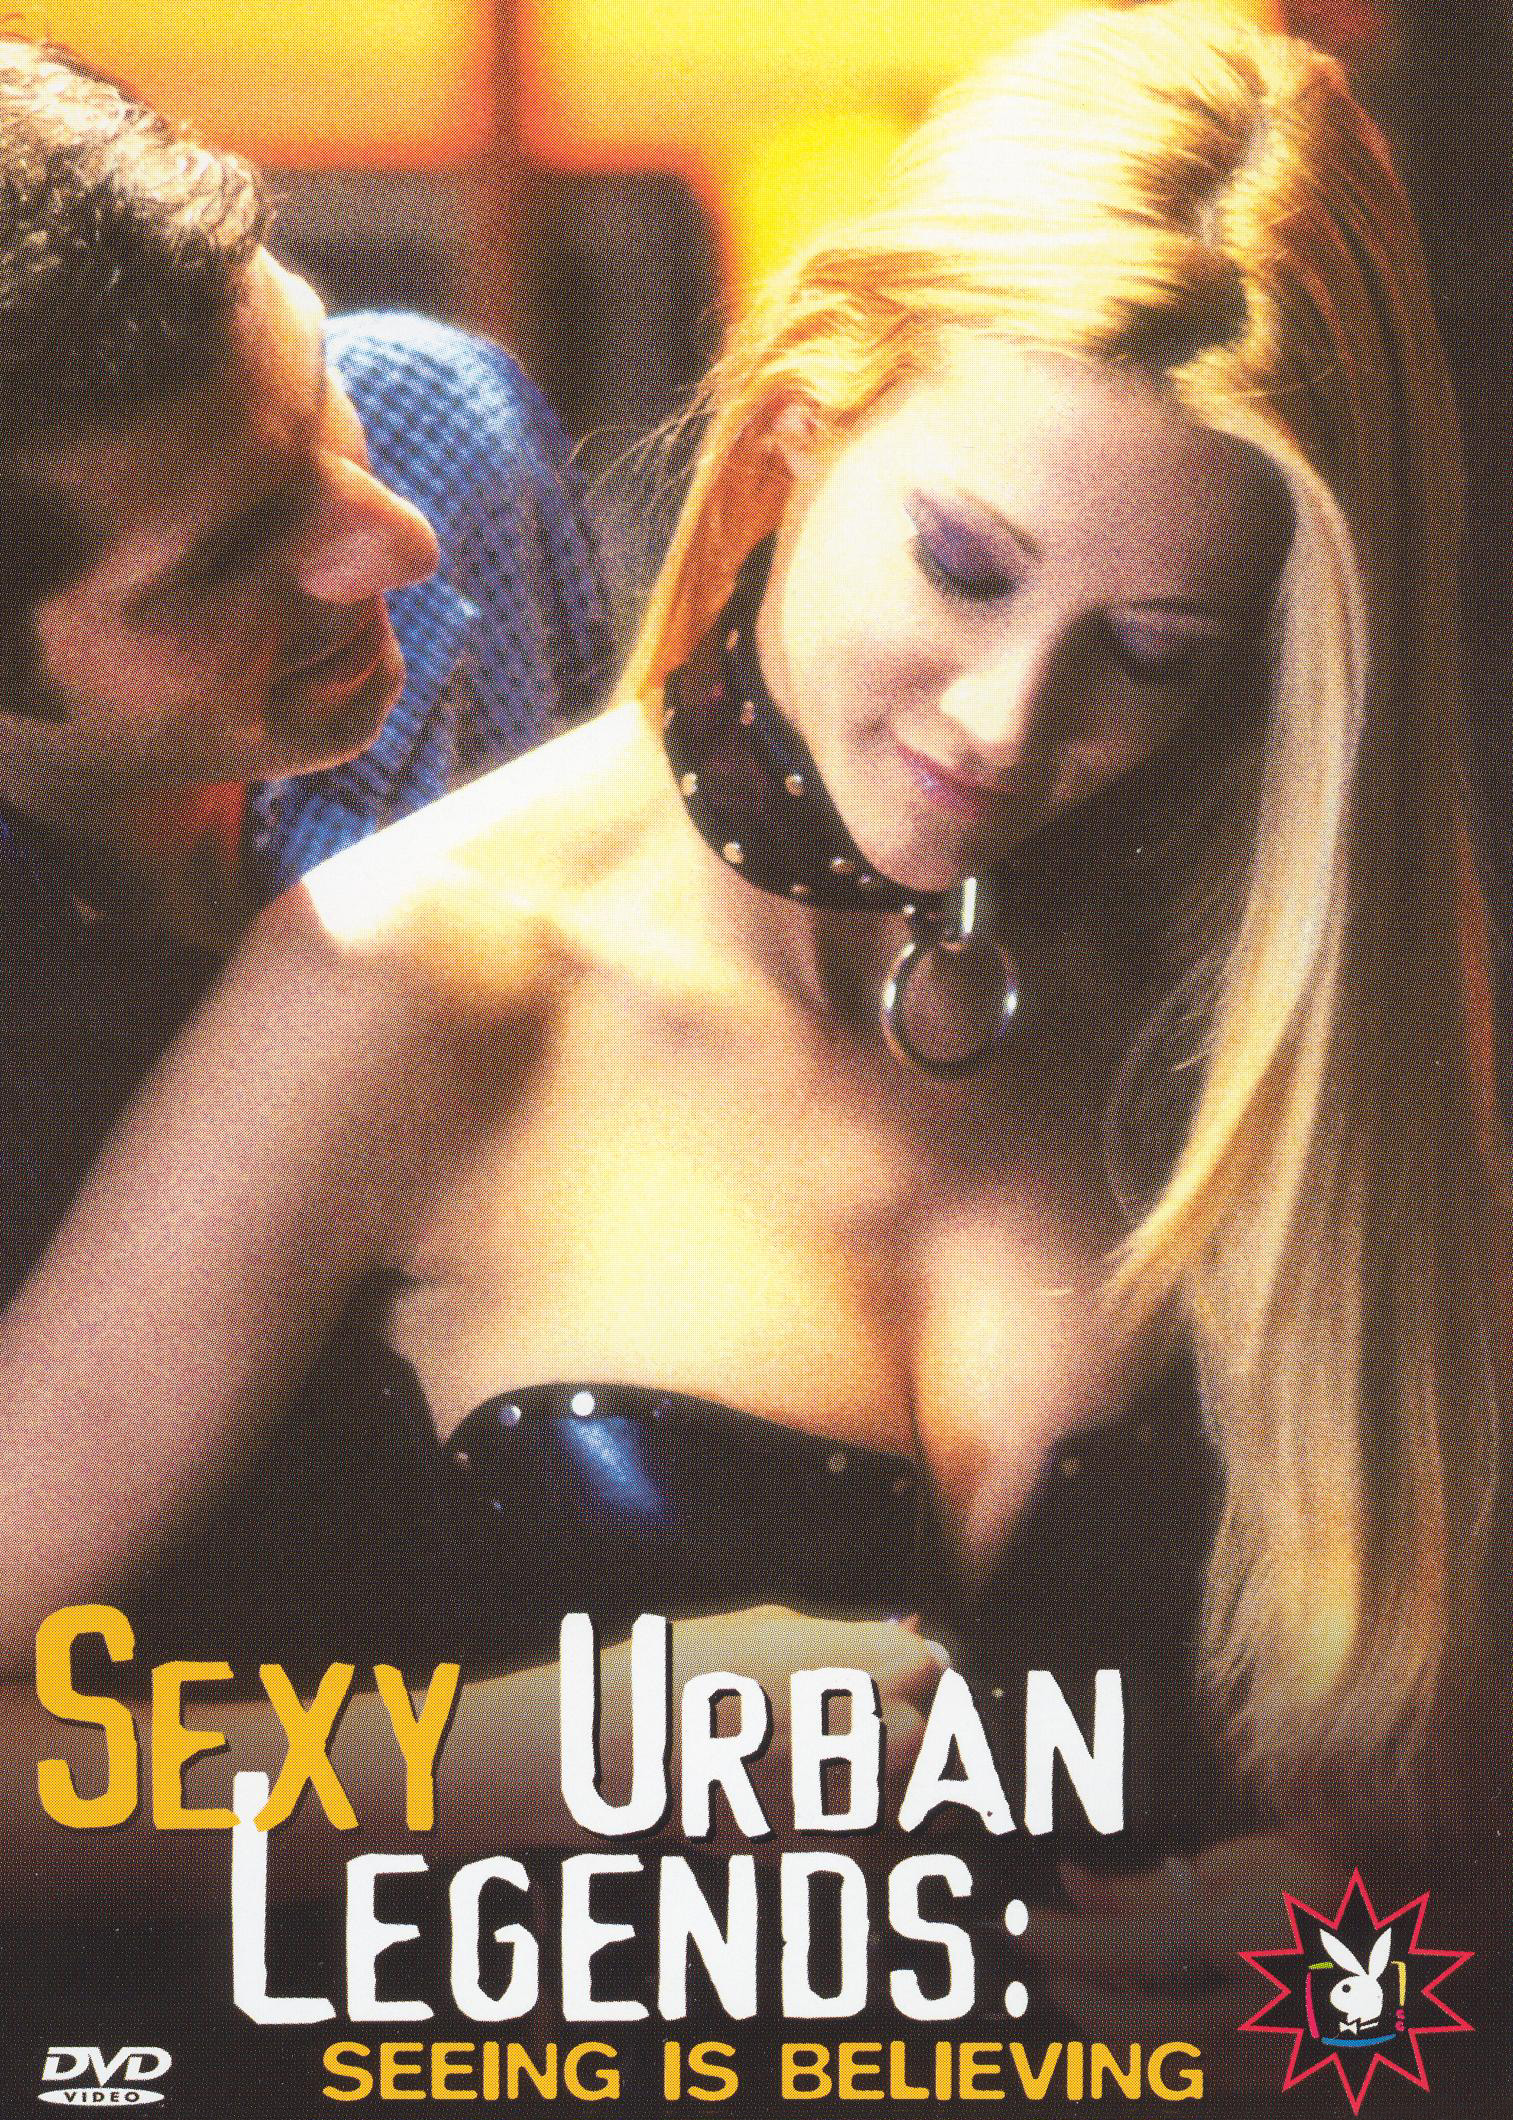 Playboy TV: Sexy Urban Legends - Seeing Is Believing